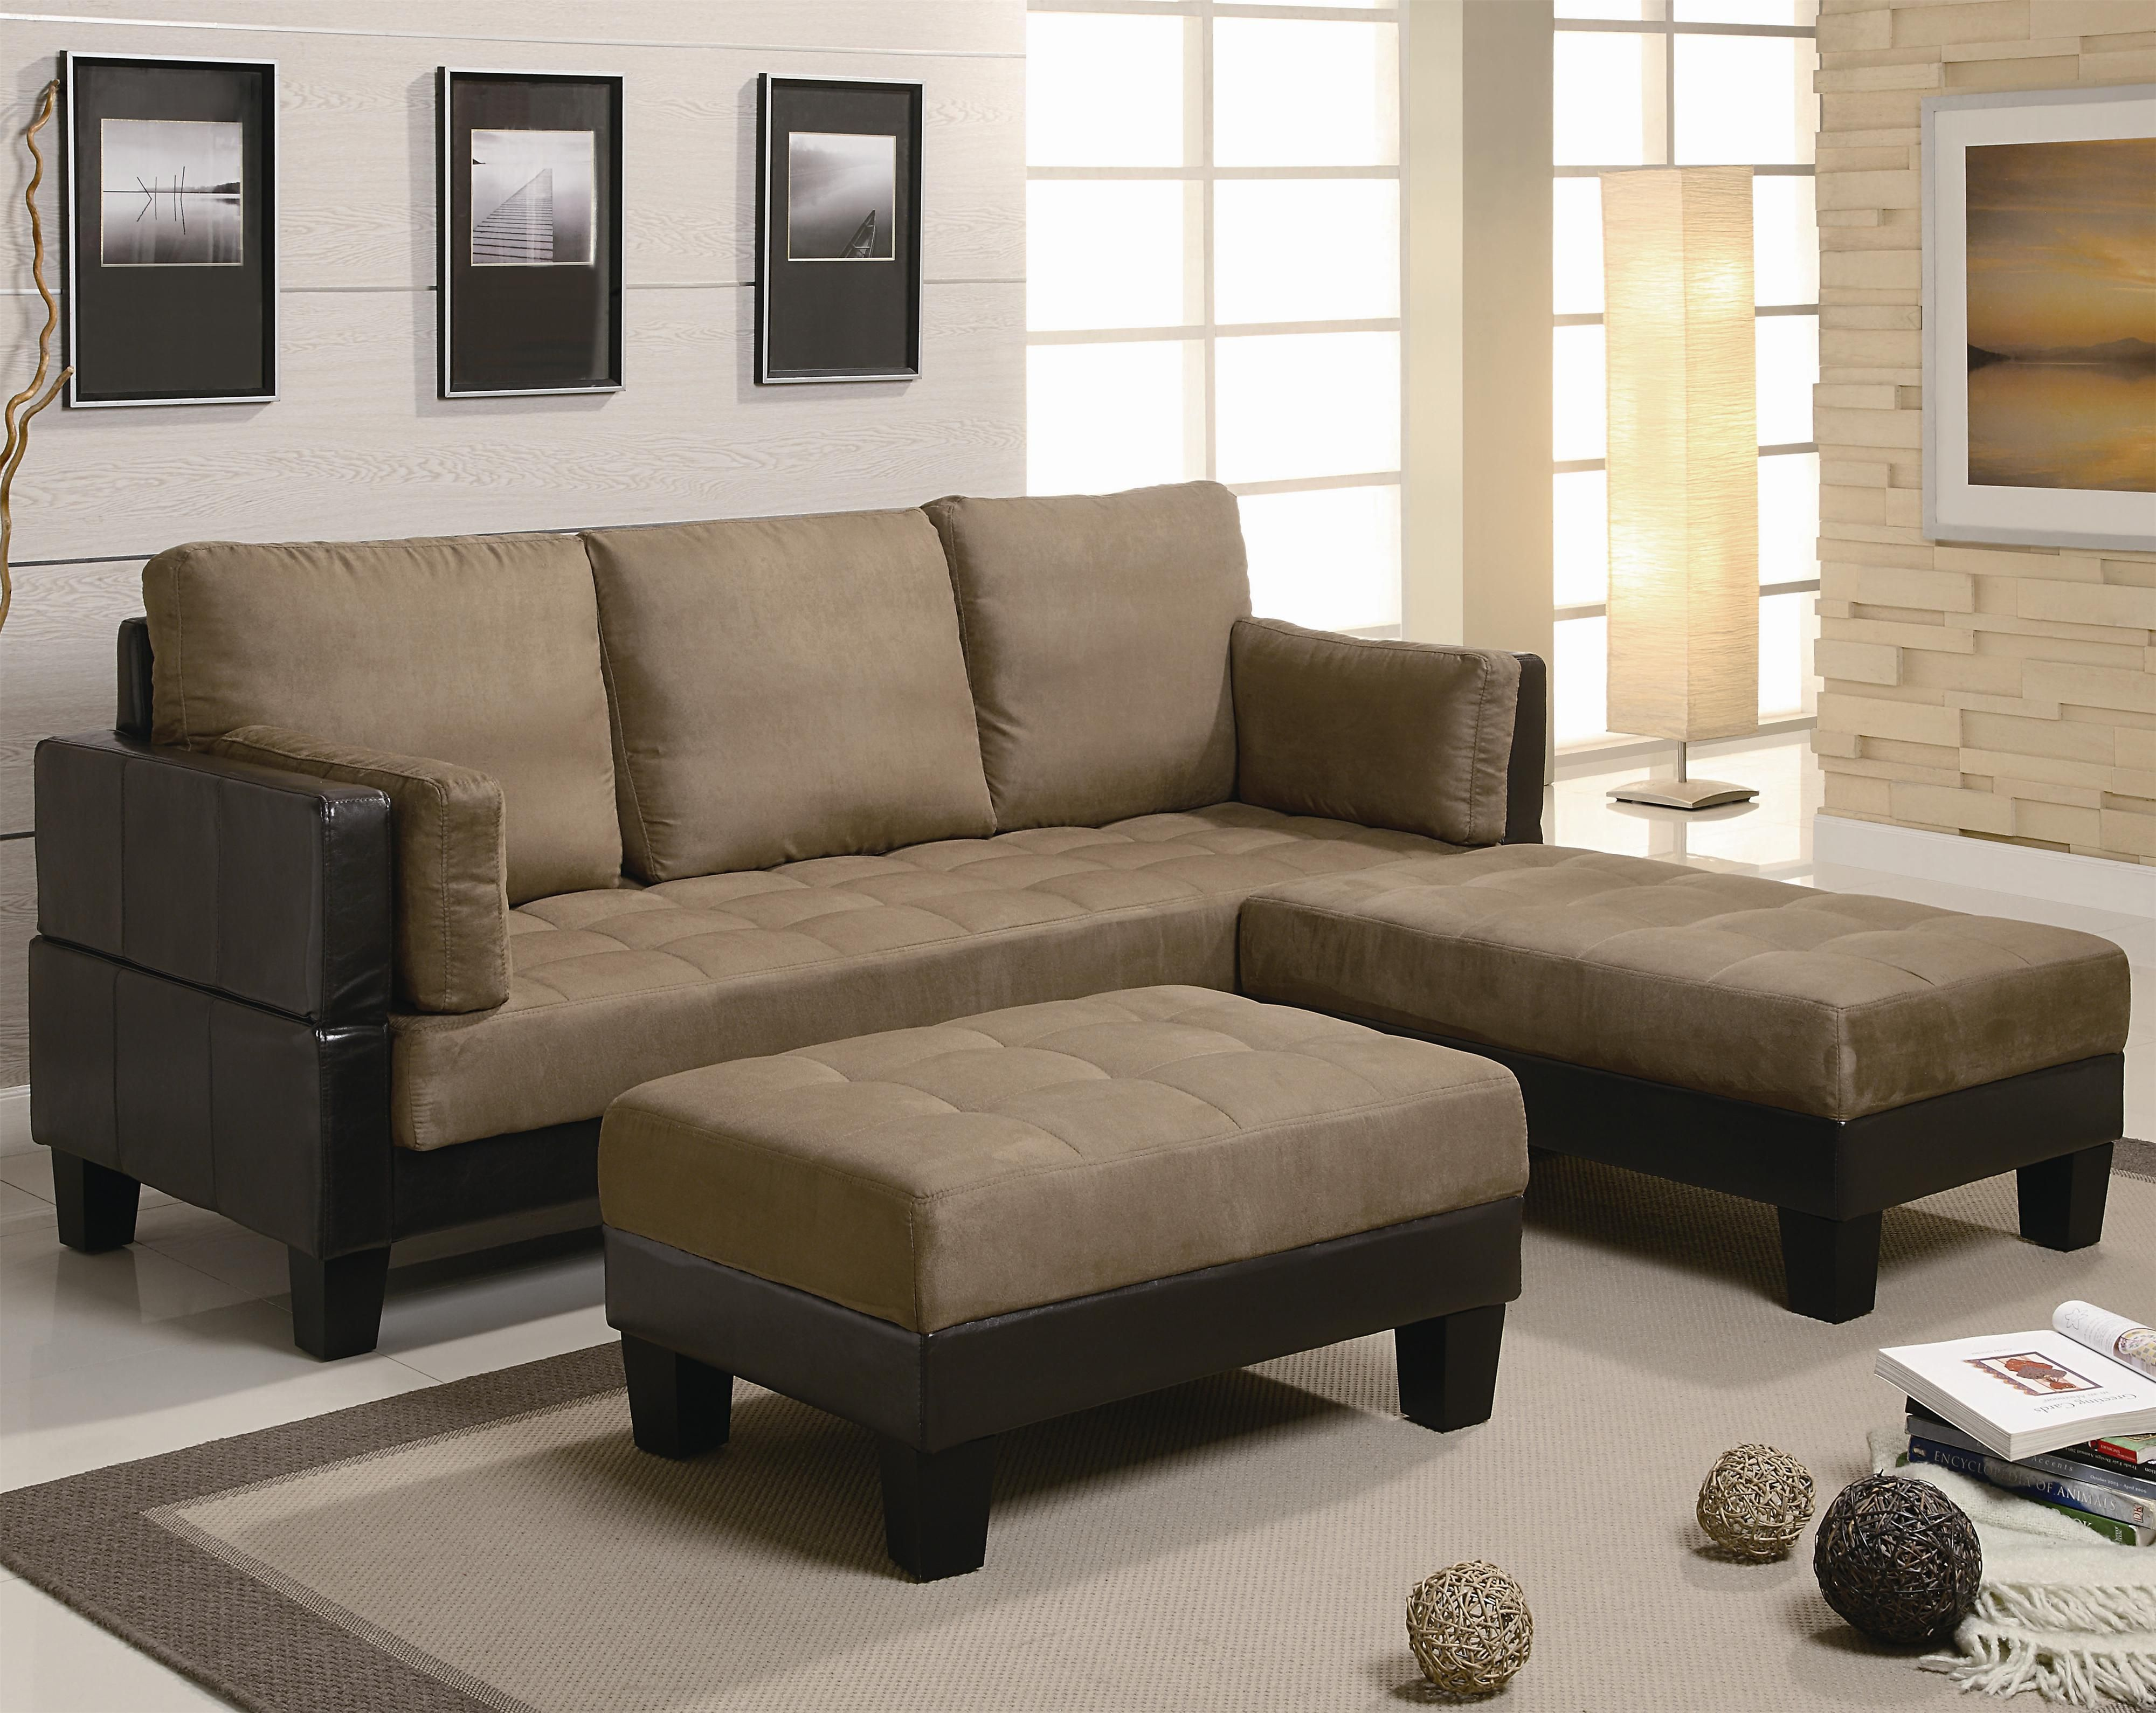 Leather Sectional Sofa Ellesmere Contemporary Sofa Bed Group with Ottomans by Coaster